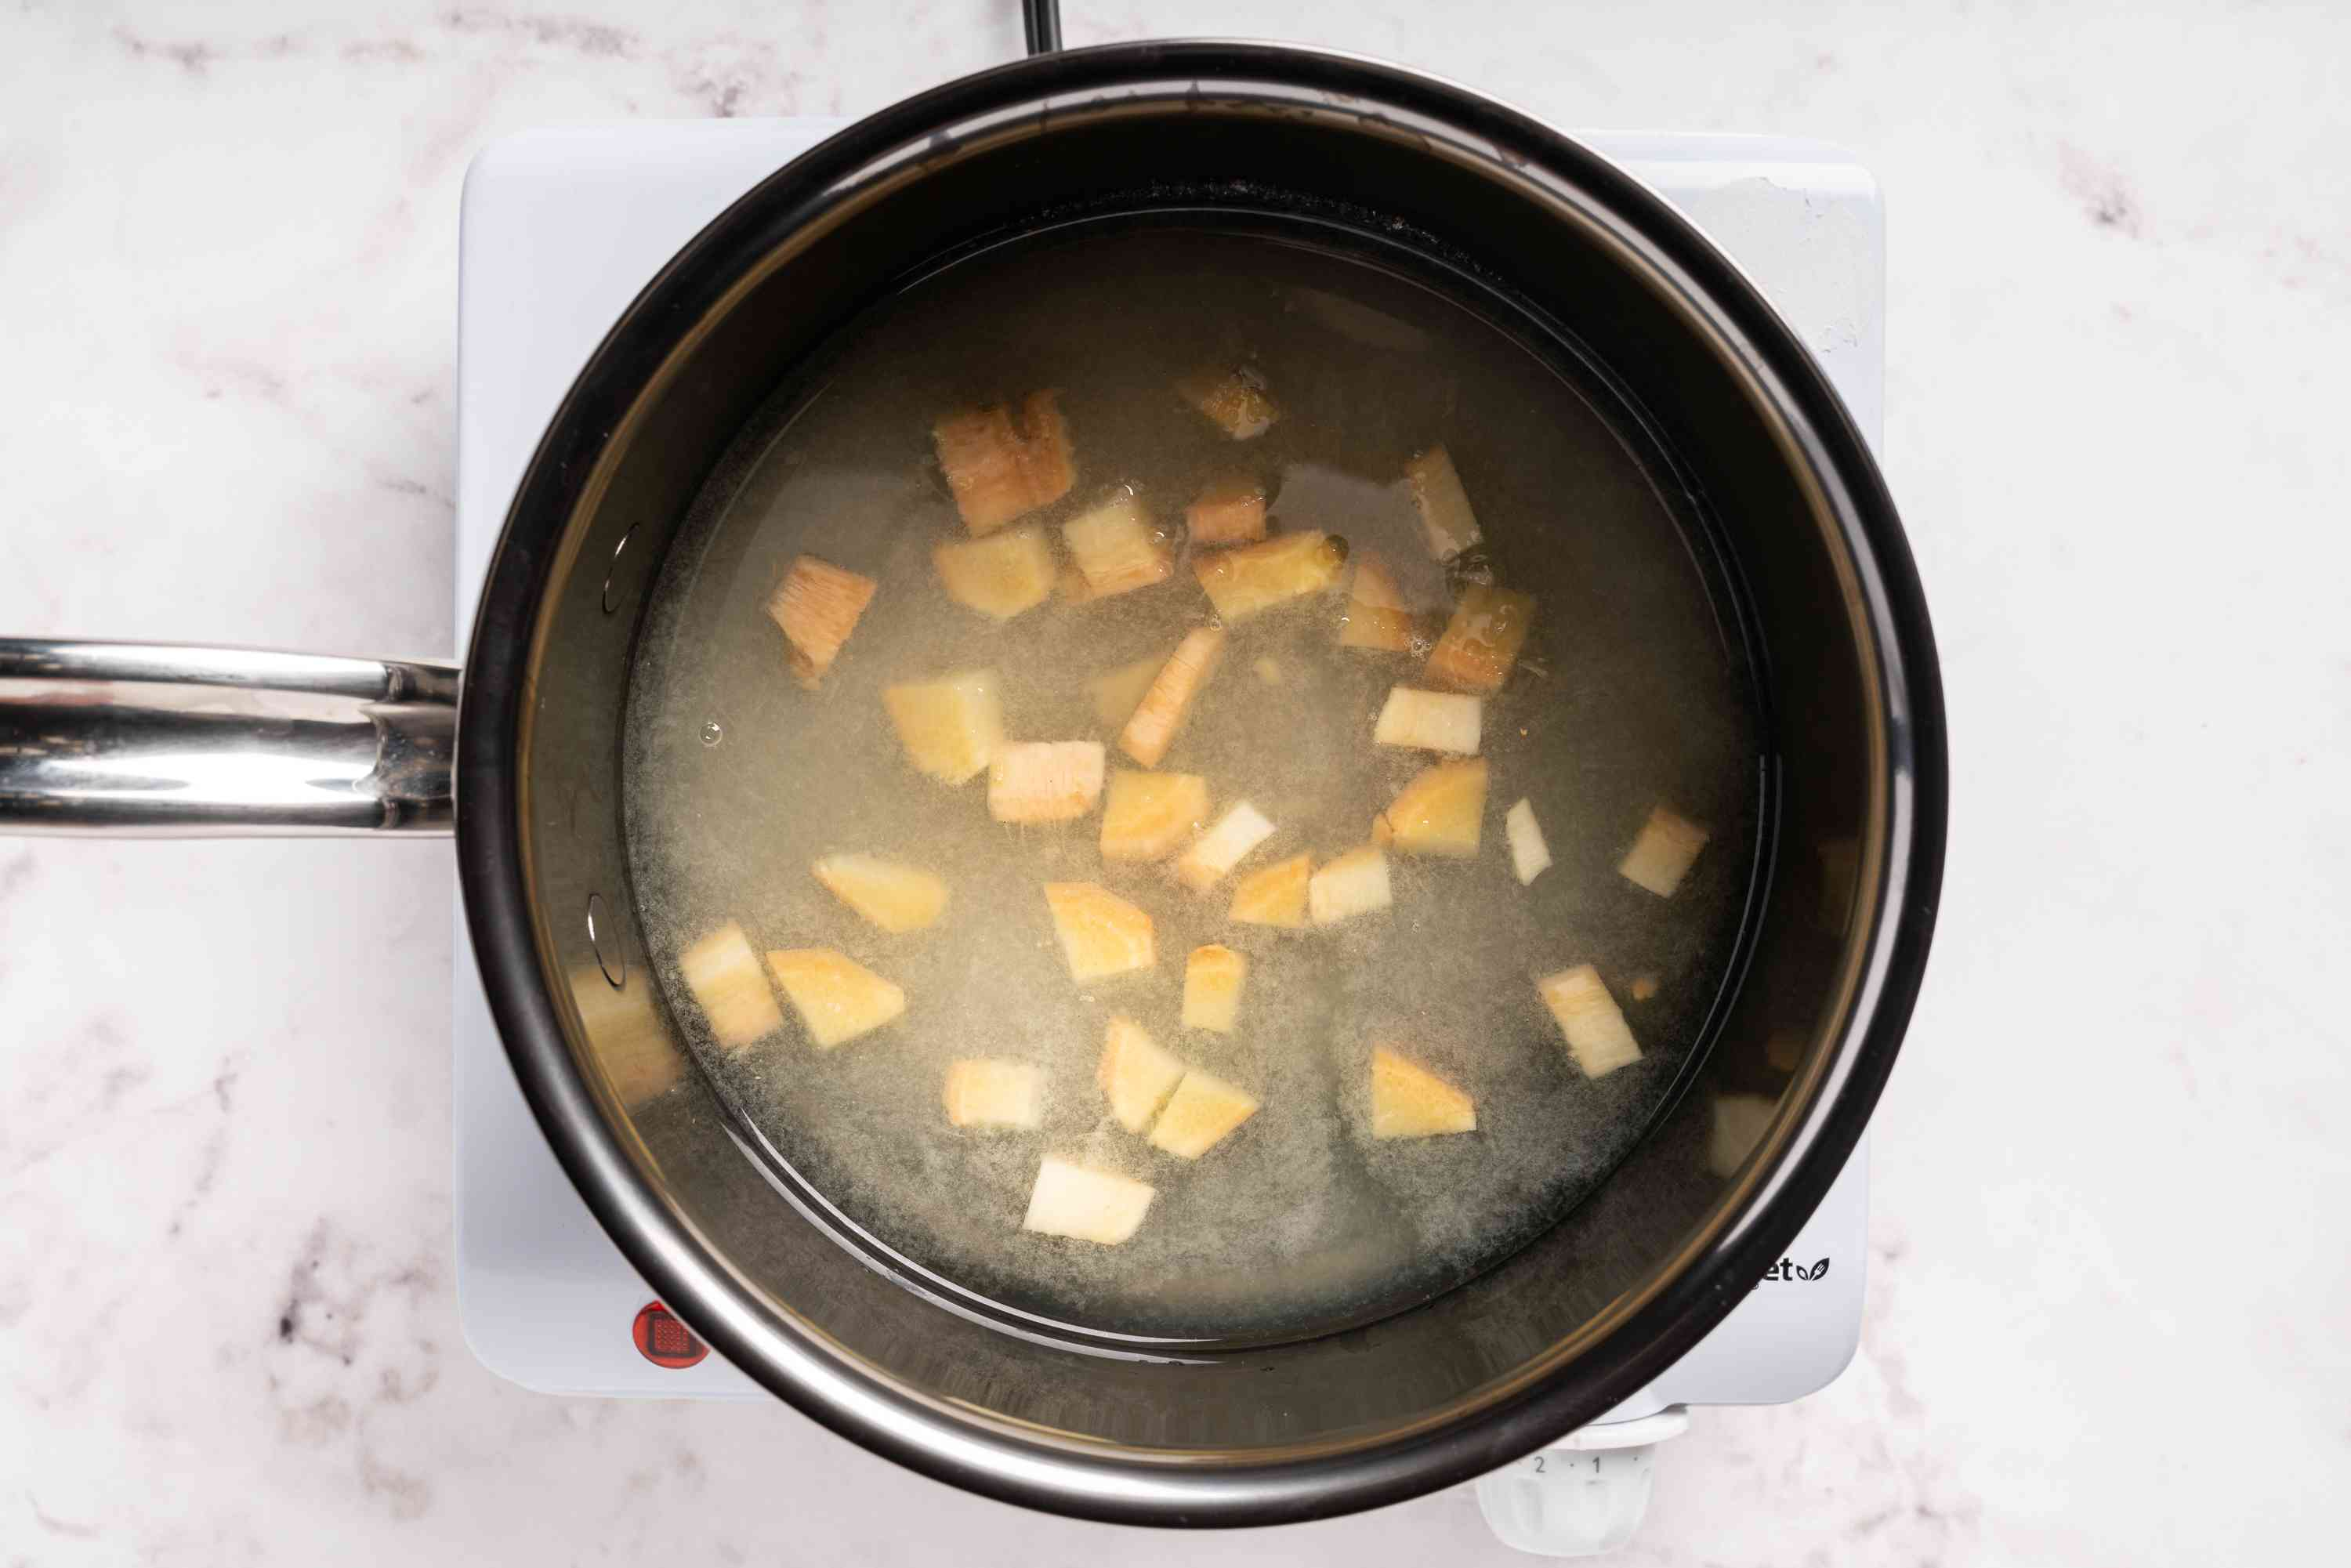 Bring all ingredients to a boil in a pot